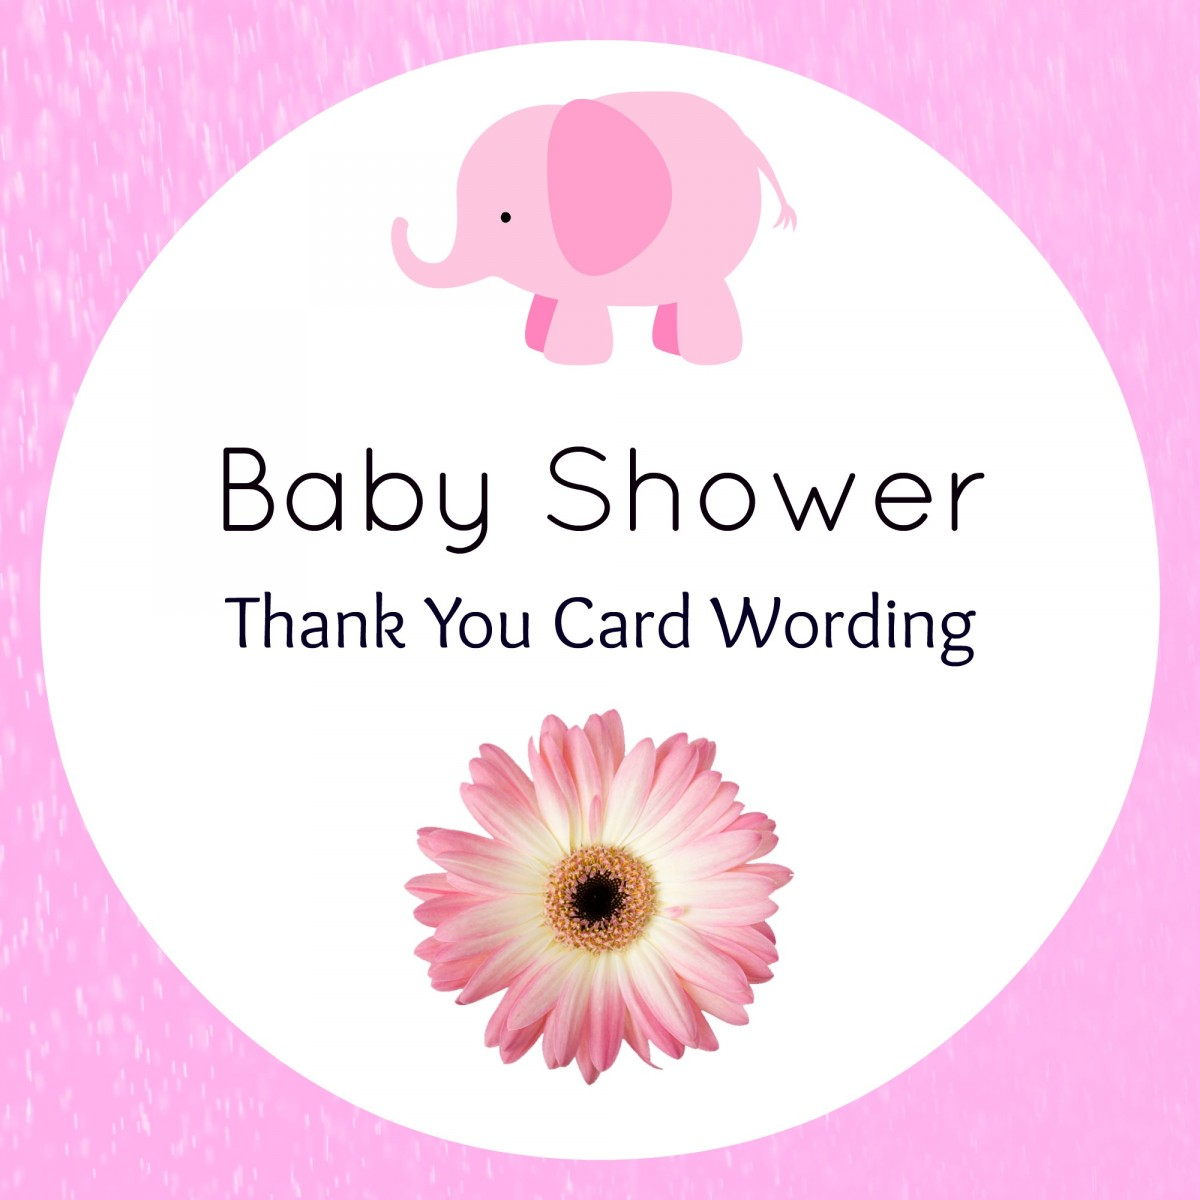 Full Size of Baby Shower:72+ Rousing Baby Shower Thank You Cards Picture Ideas Baby Shower Thank You Cards Unique Baby Shower Juegos Para Baby Shower Actividades Baby Shower Bebe Baby Shower Best Shows For Babies Baby Shower Pictures Baby Shower Thank You Card Wording